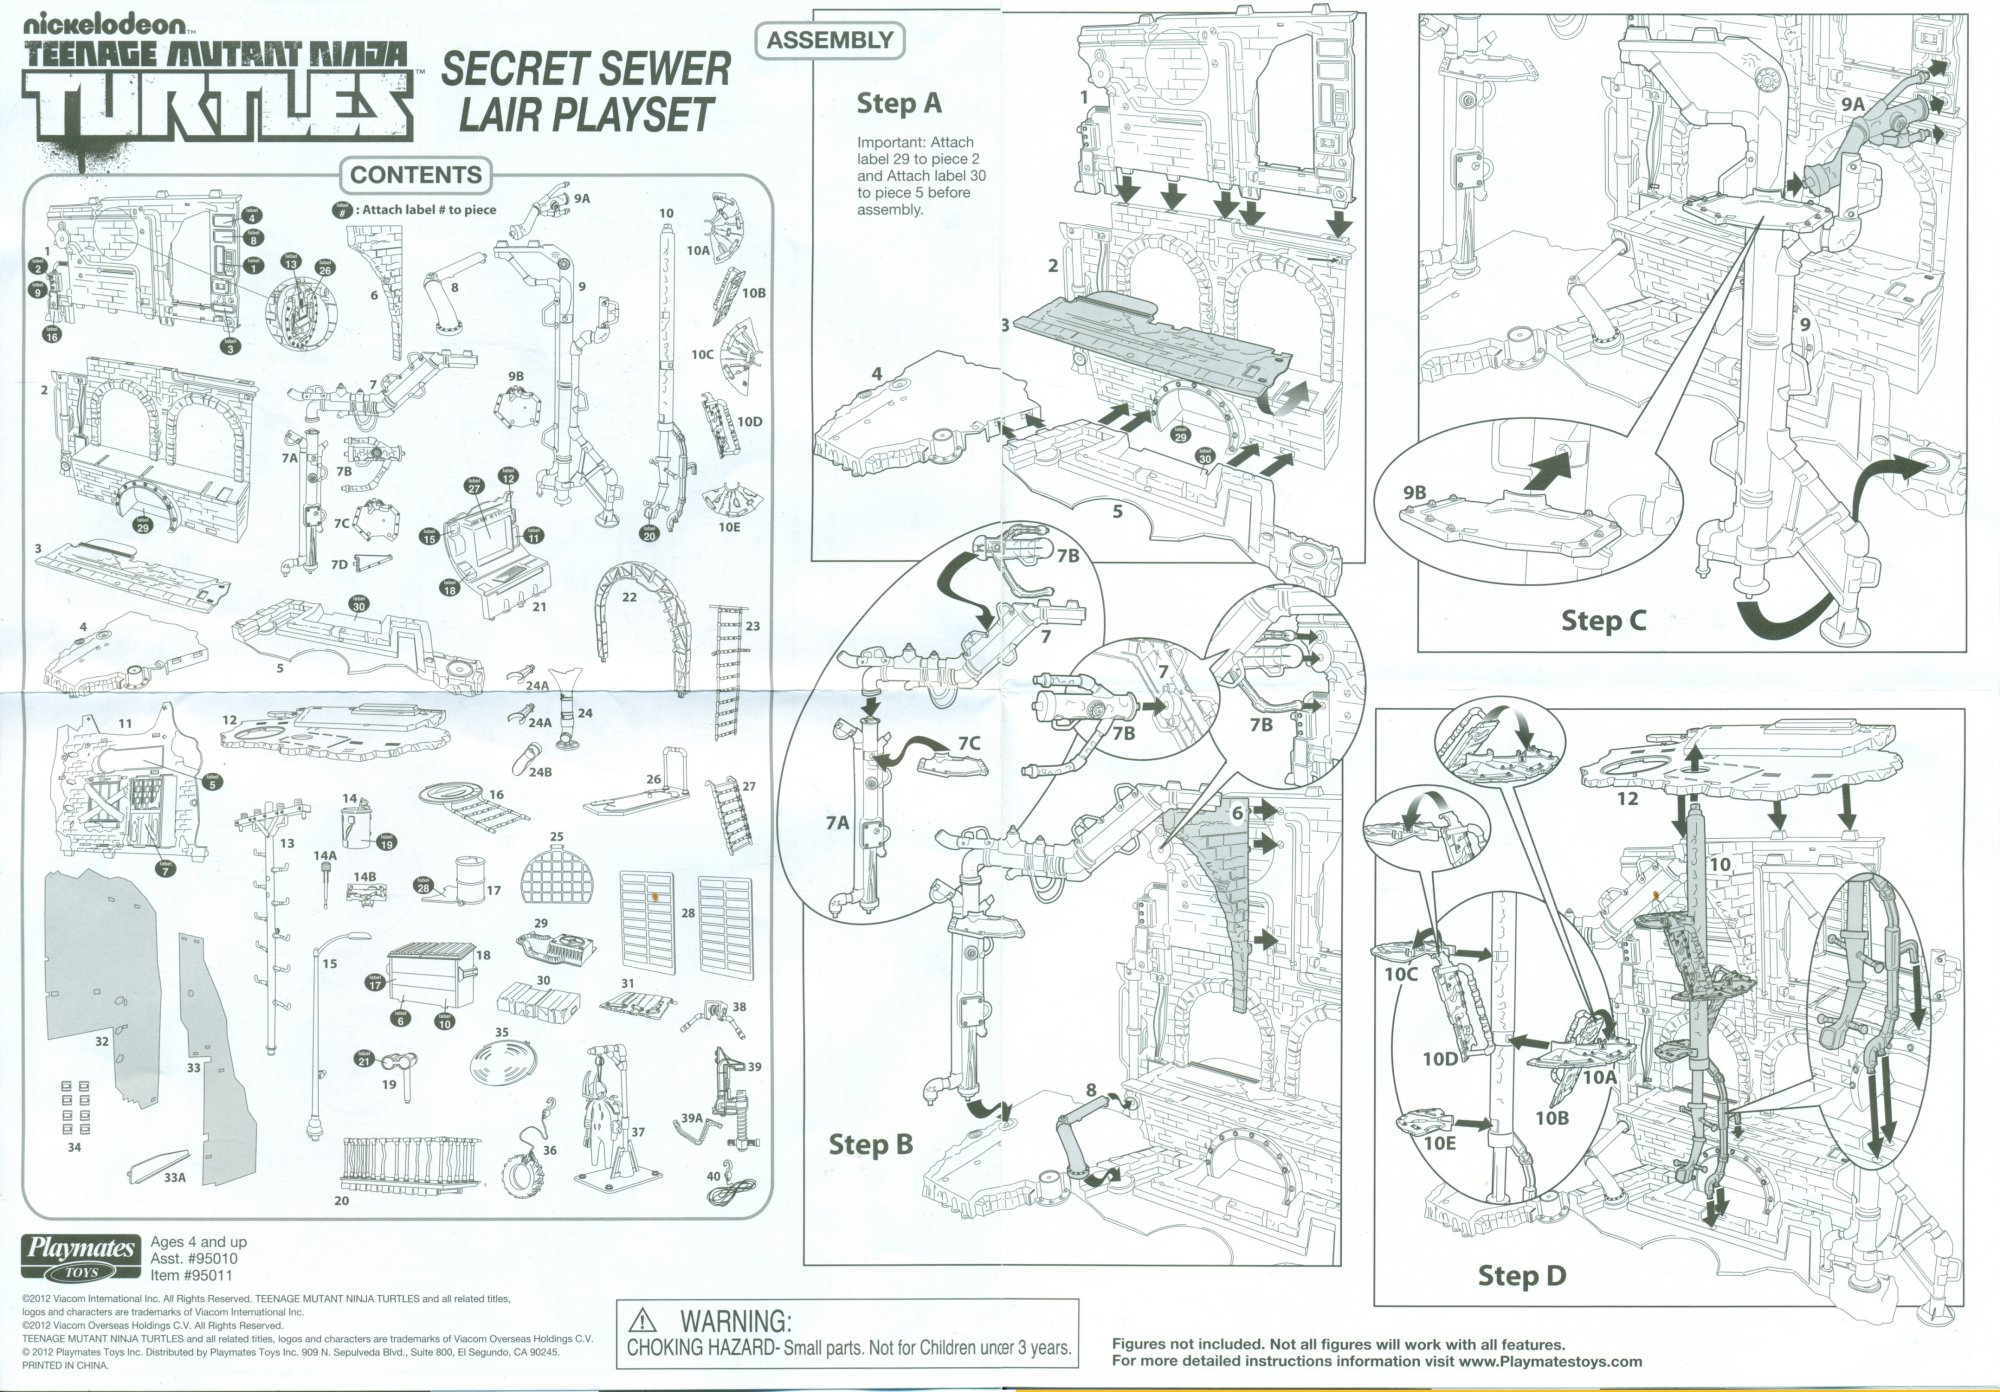 Ninja turtle secret sewer lair instructions